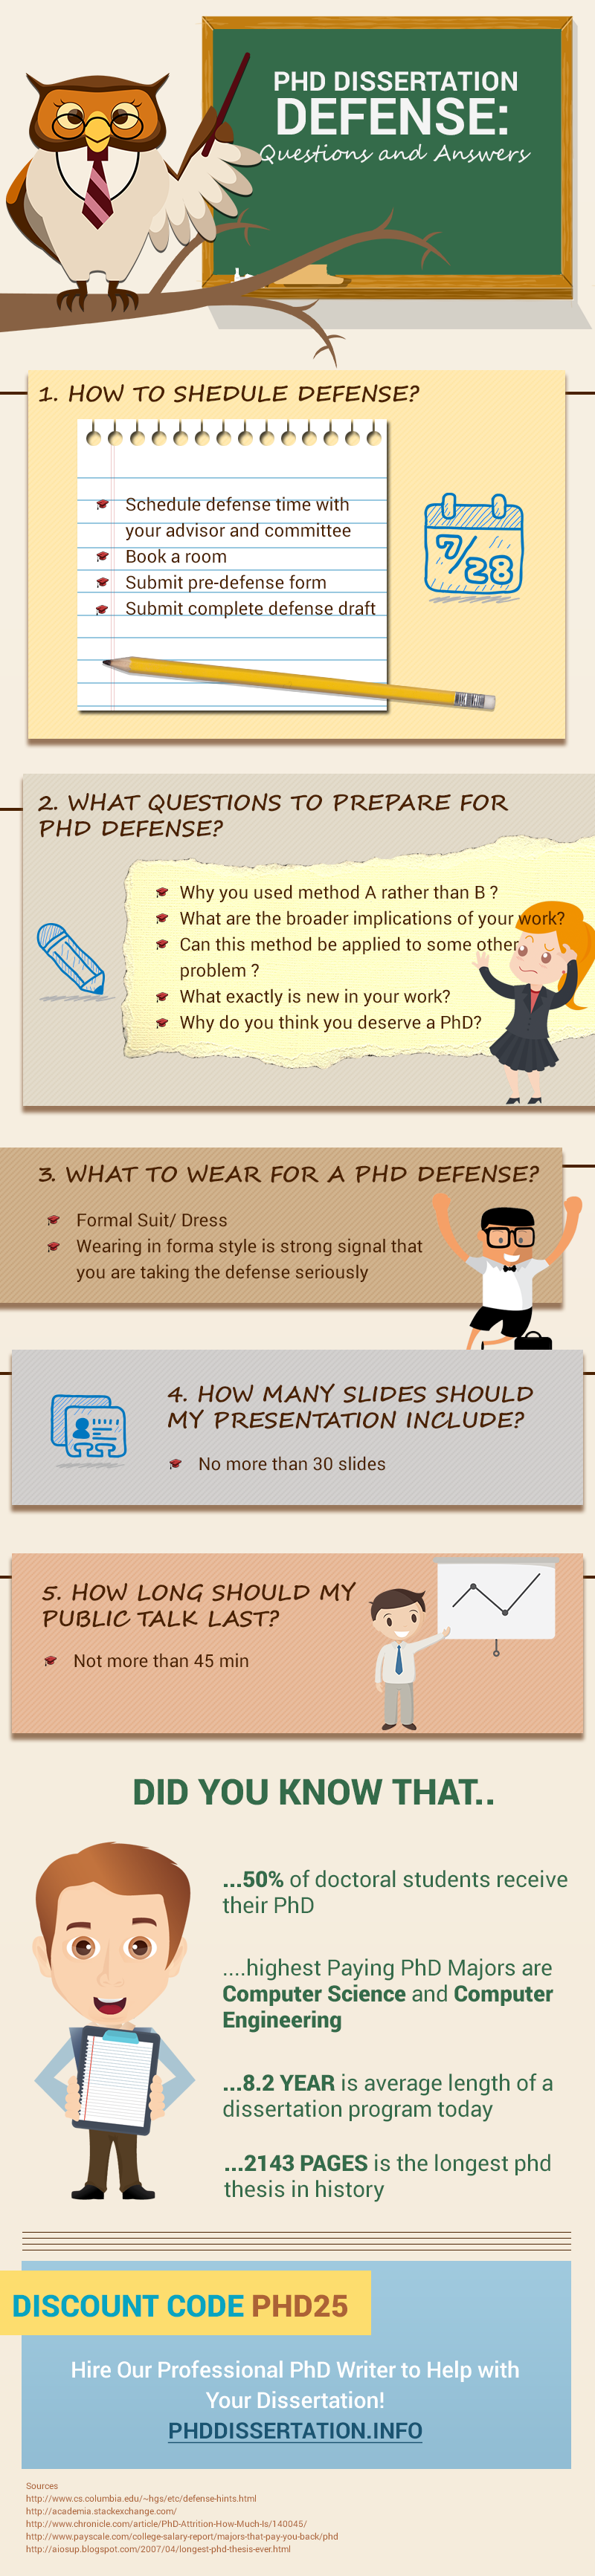 How to Prepare for Your Doctoral Dissertation Defense - Guide | PensacolaVoice Magazine